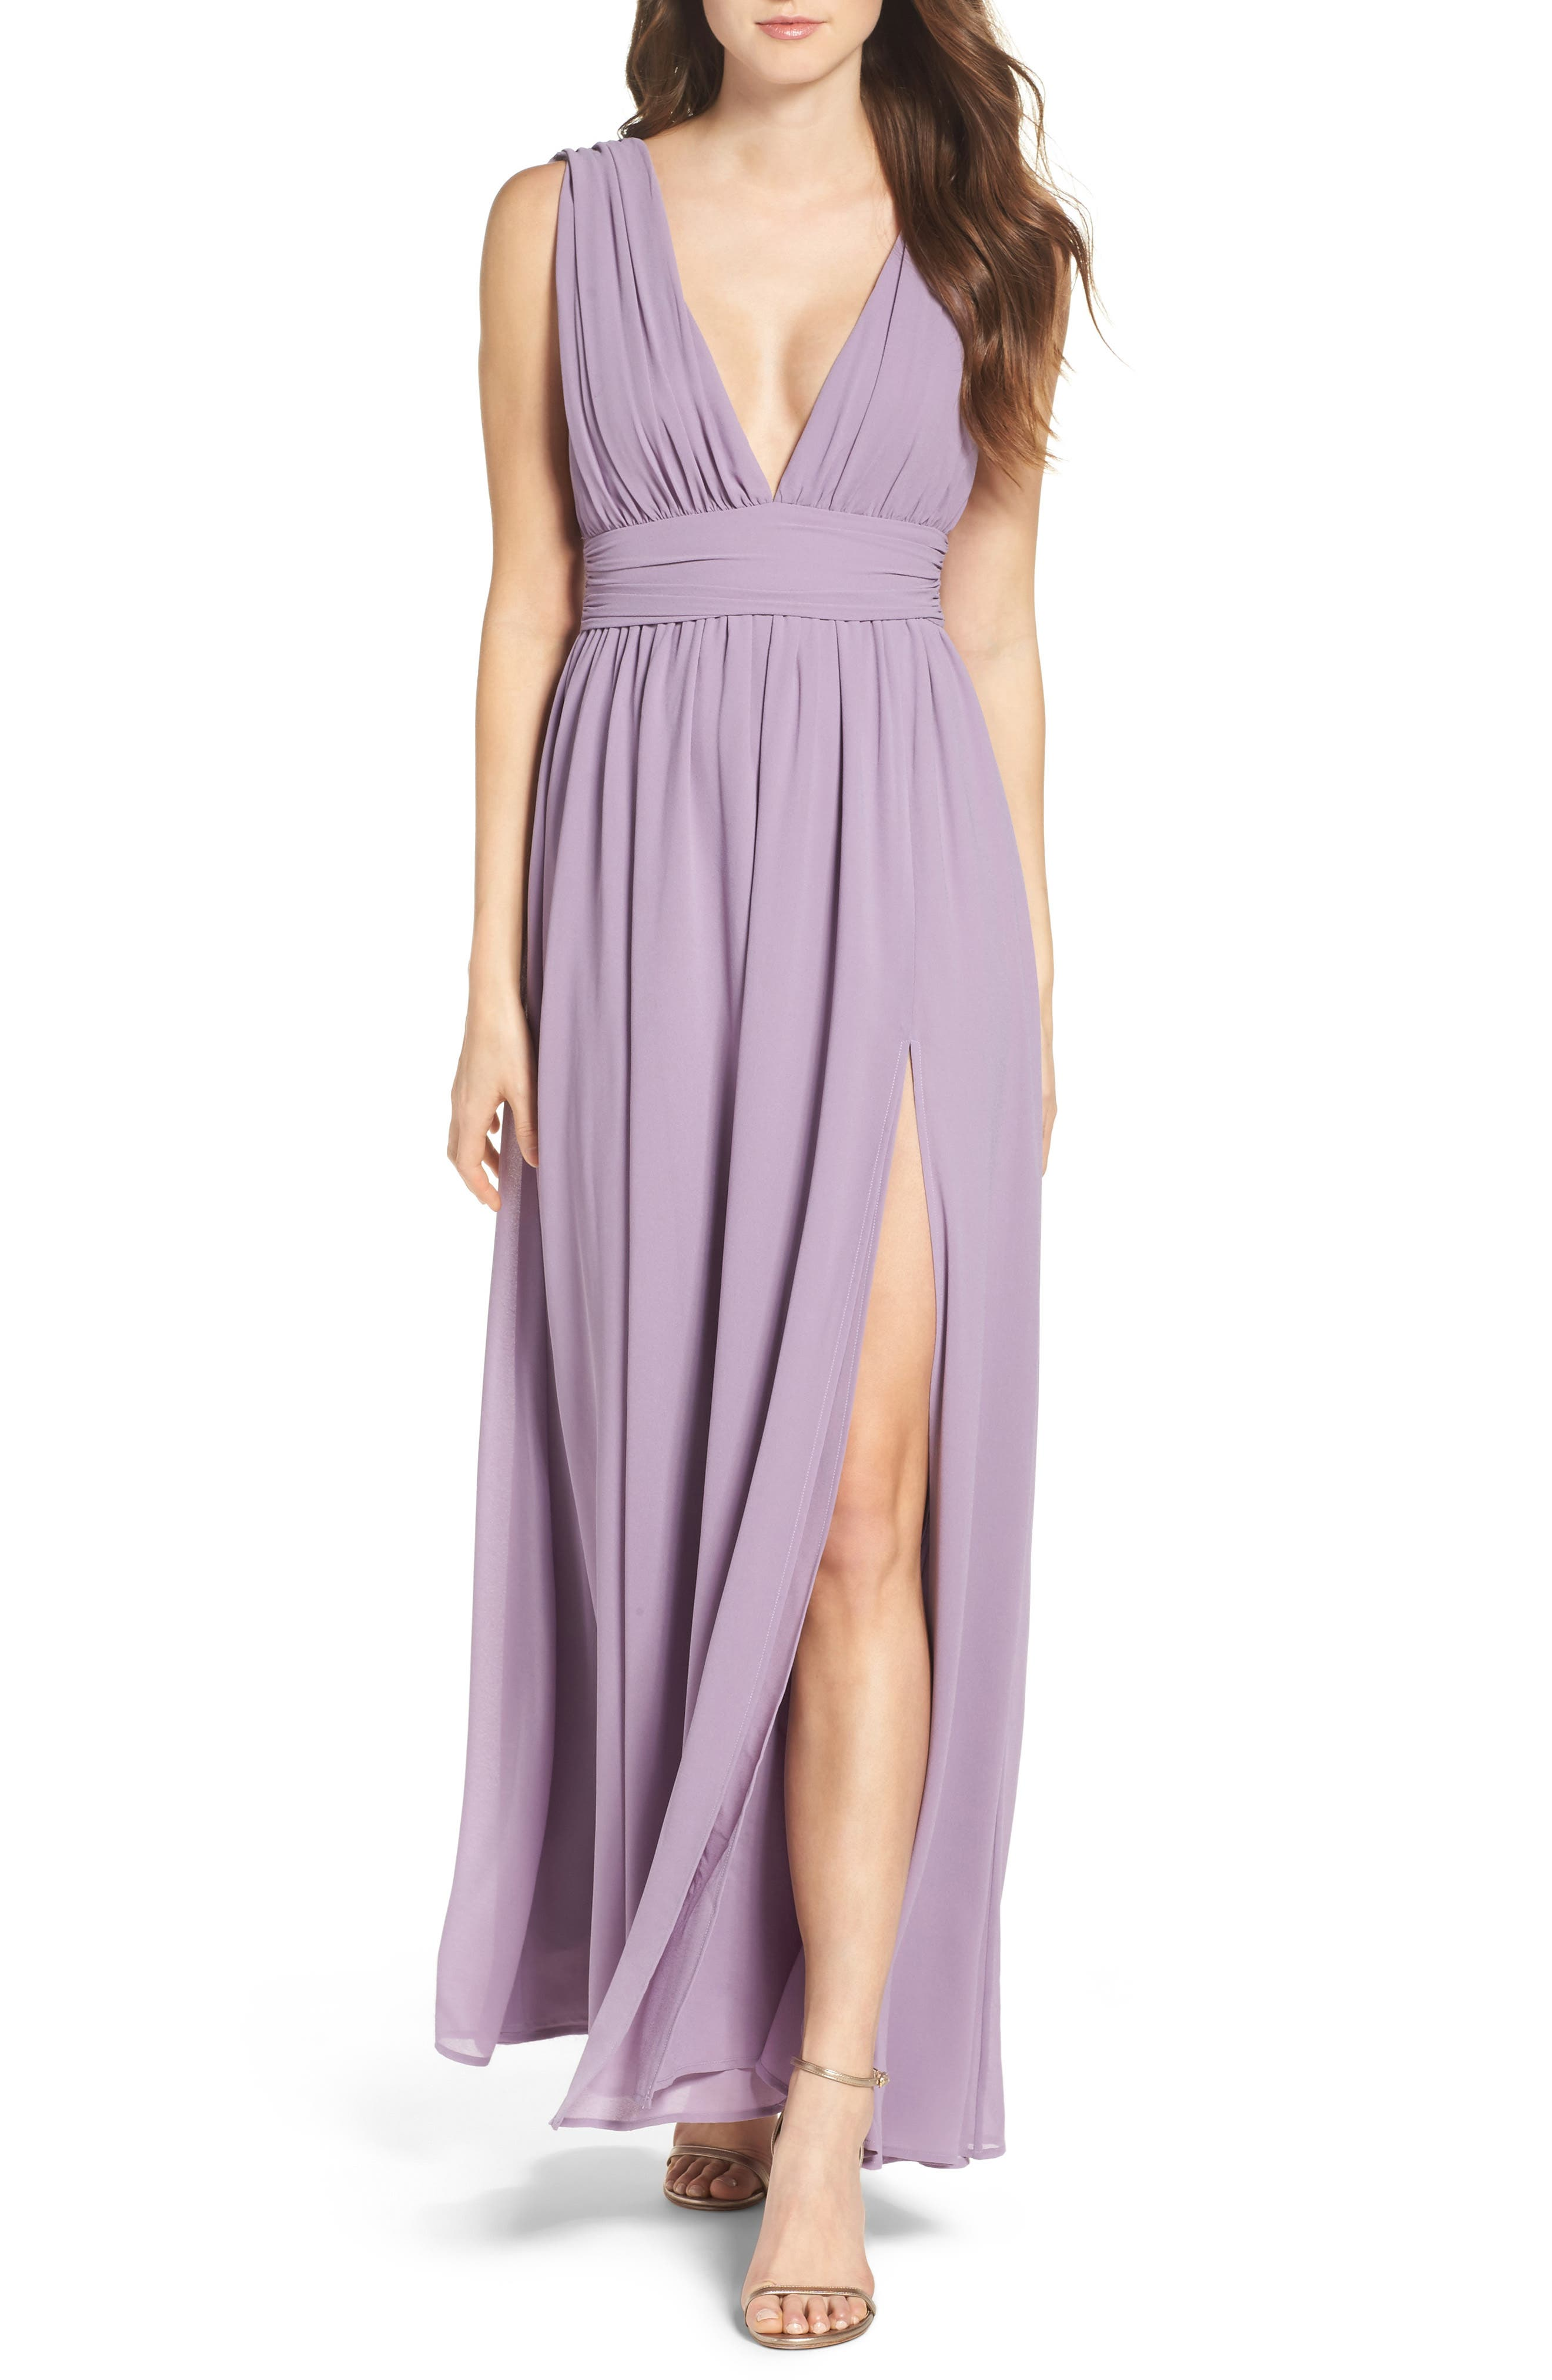 LULUS, Plunging V-Neck Chiffon Gown, Main thumbnail 1, color, DUSTY VIOLET